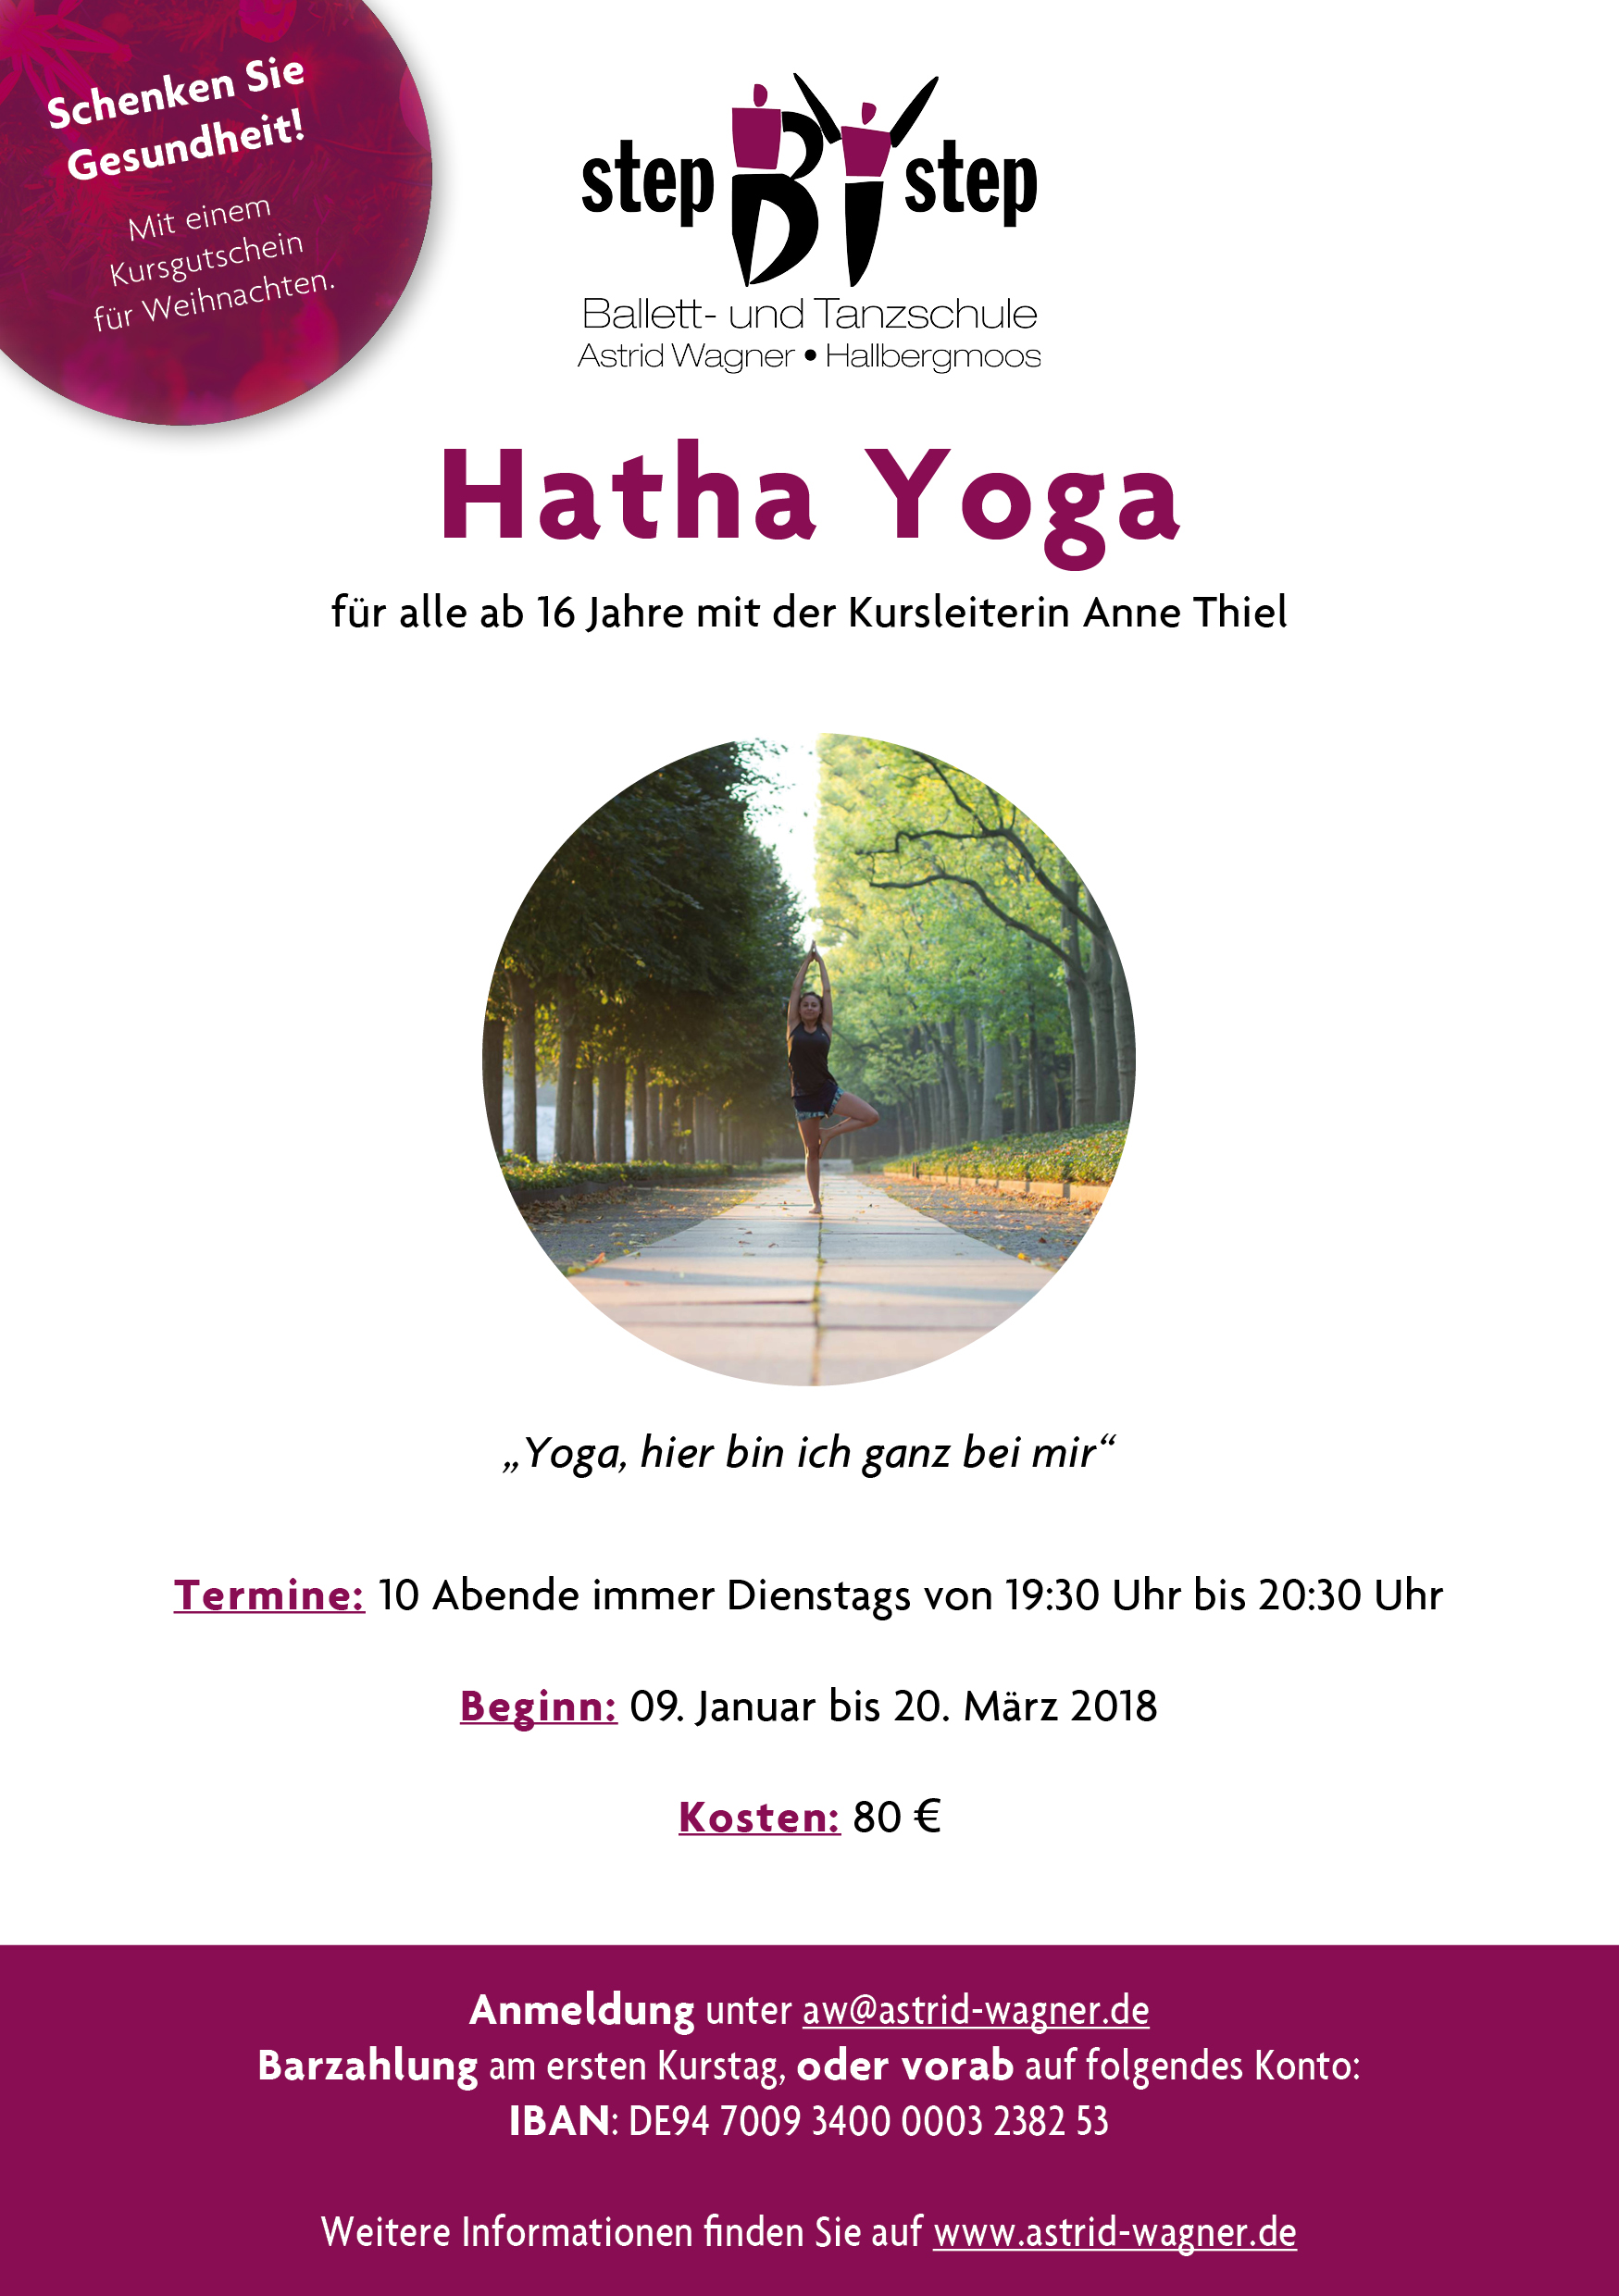 Hatha Yoga Step by step astrid wagner